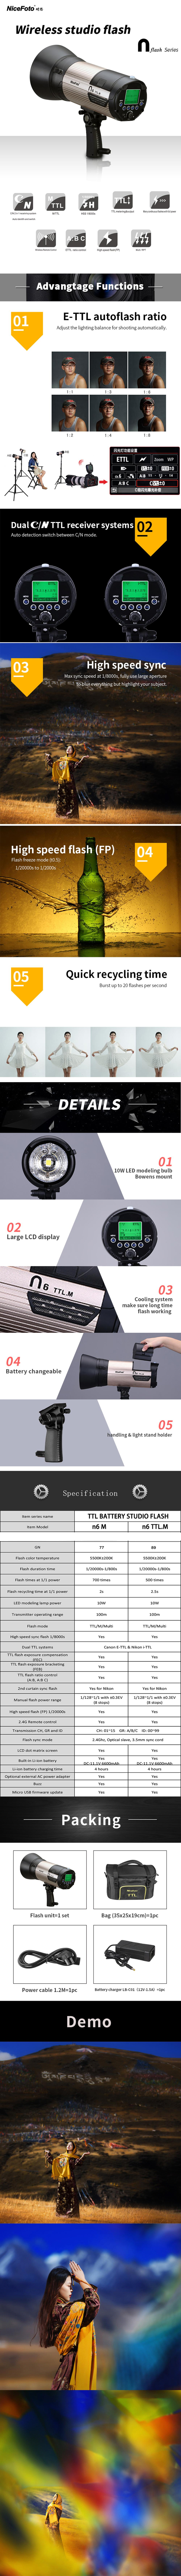 n6 TTL.M  NiceFoto 600ws TTL Battery powered flash   HSS 1/8000s for Nikon and Canon, wireless flash Photographic equipment